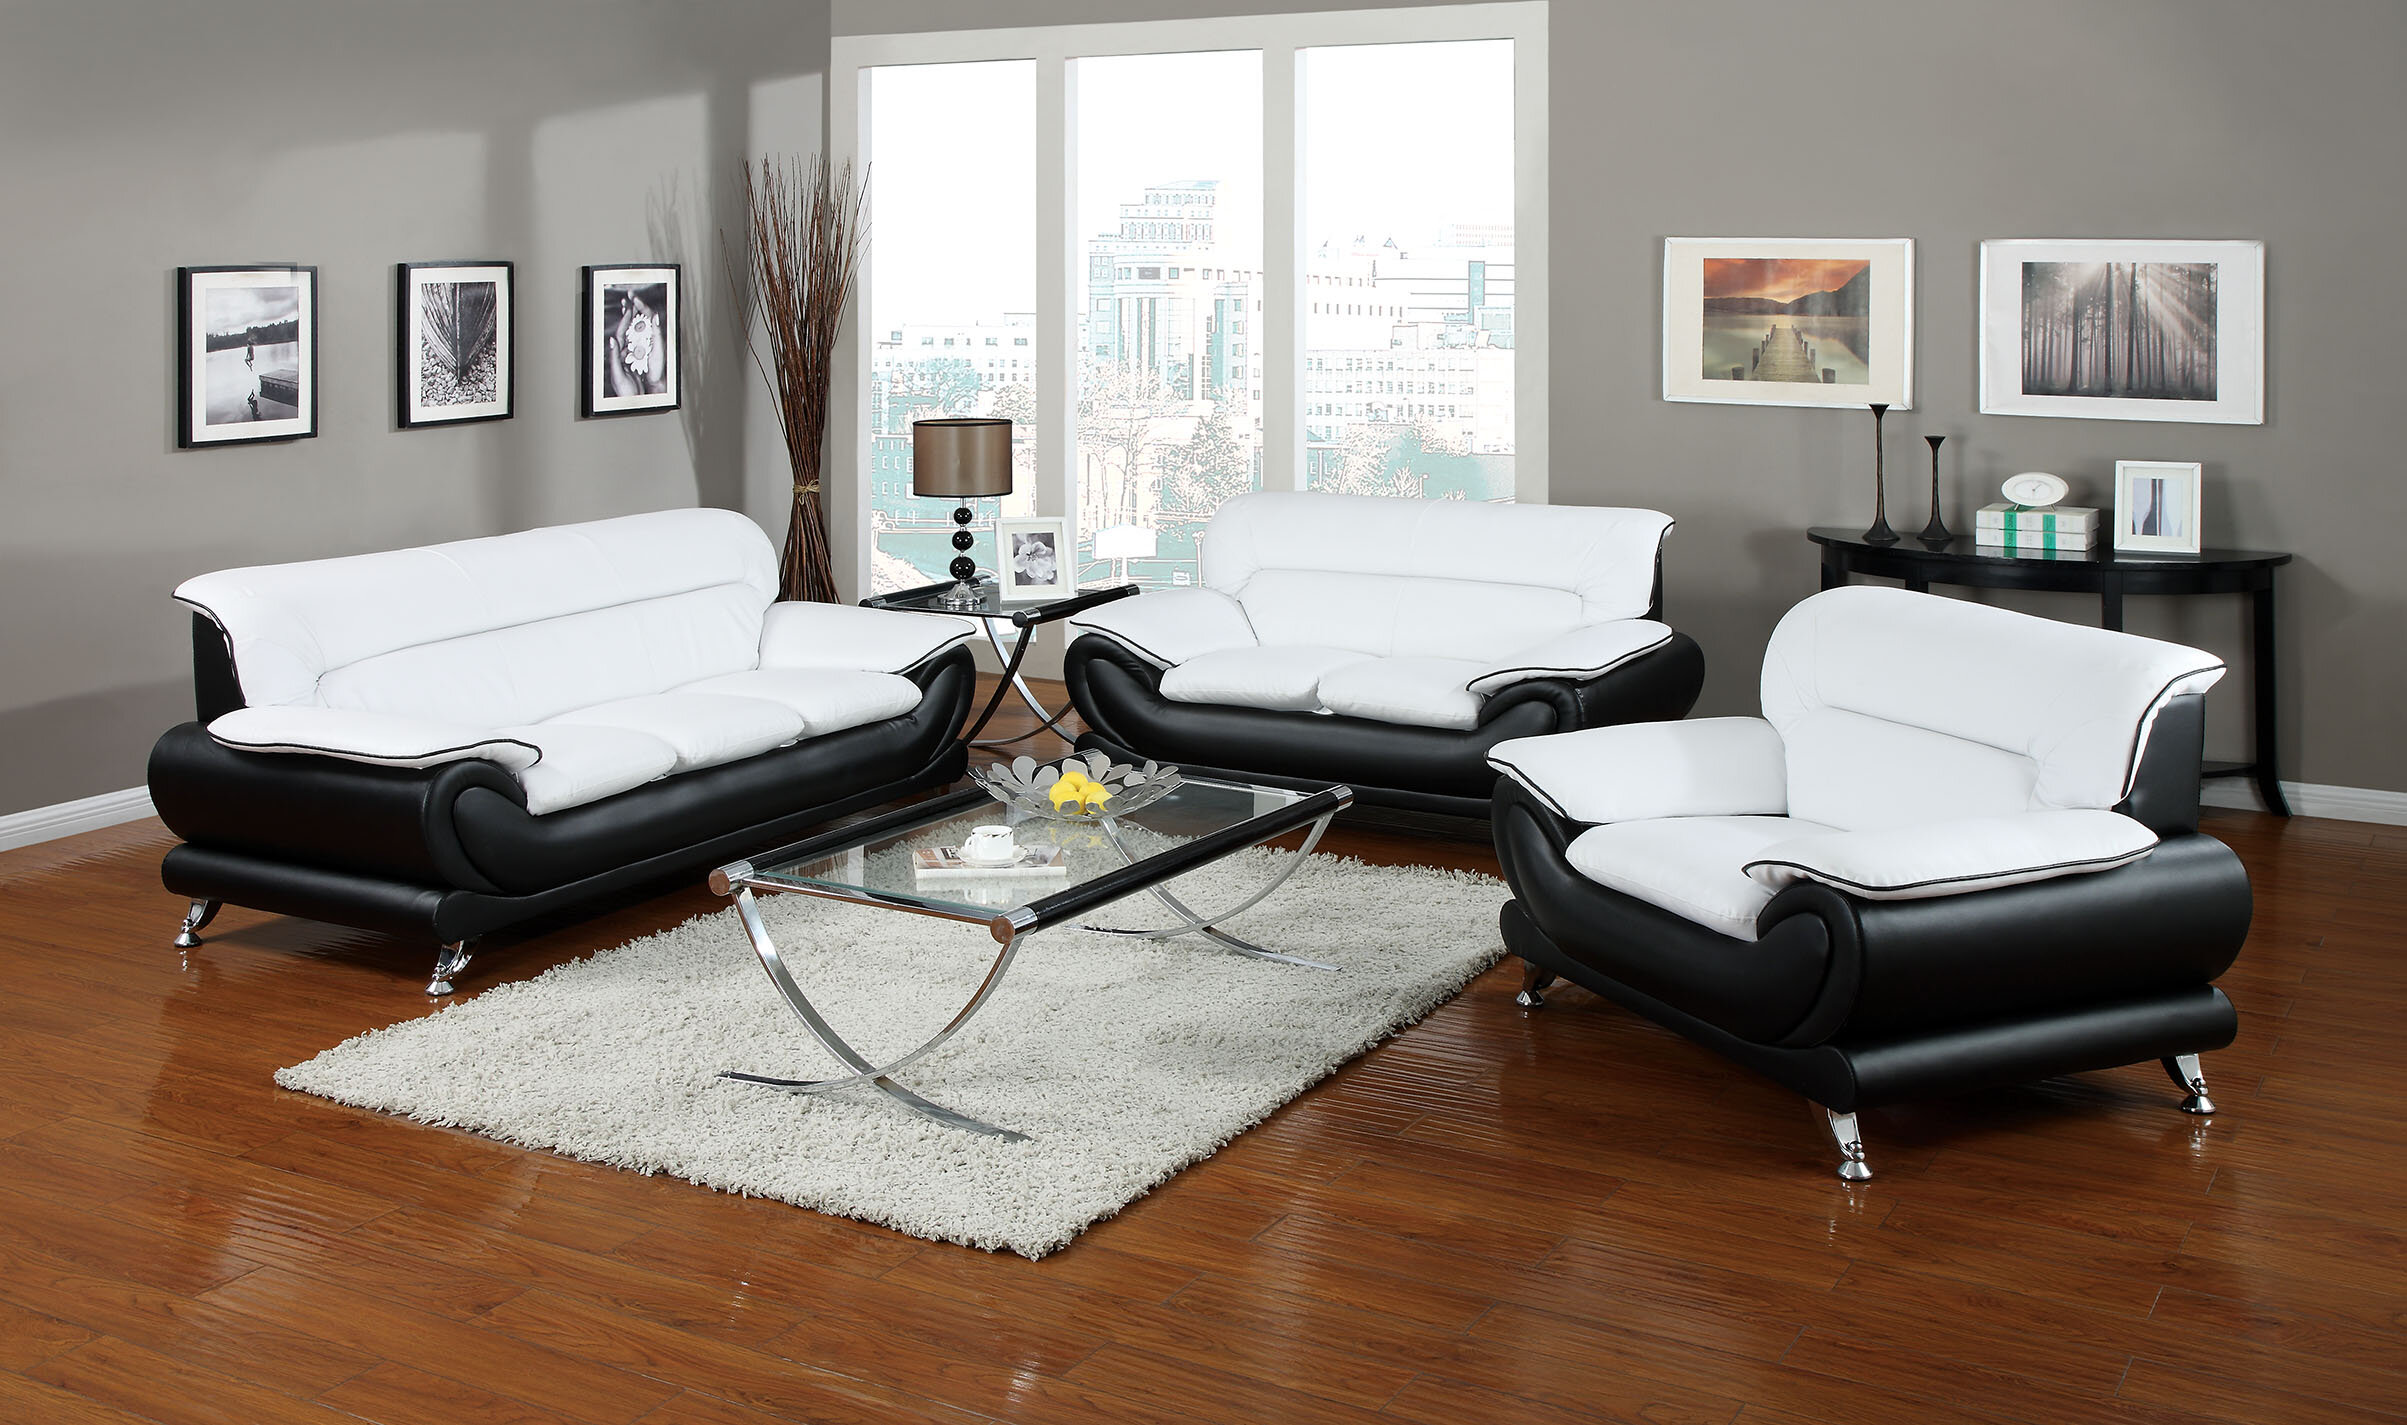 Orren Ellis Quays 3 Piece Living Room Set | Wayfair